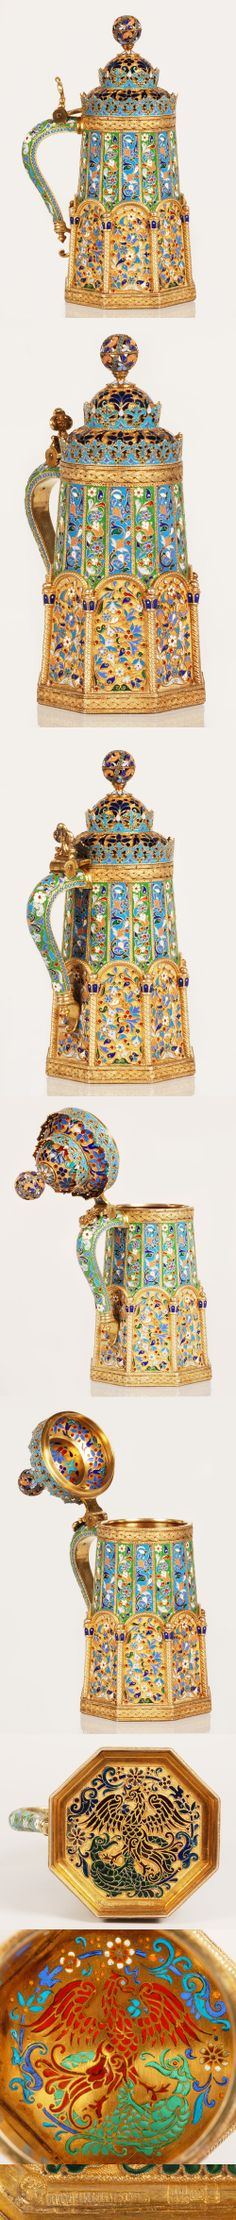 A Russian  gilded silver , multi-color cloisonne and plique-a-jour enamel tankard by Pavel Ovchinnikov, Moscow, circa 1889. Of octagonal form, the body extensively decorated with enameled scrolling floiage, the domed lid pierced and filled with vibranly colored plique enamel, the base exquisitely finished with plique enamel scene of an eagle fighting a dragon.